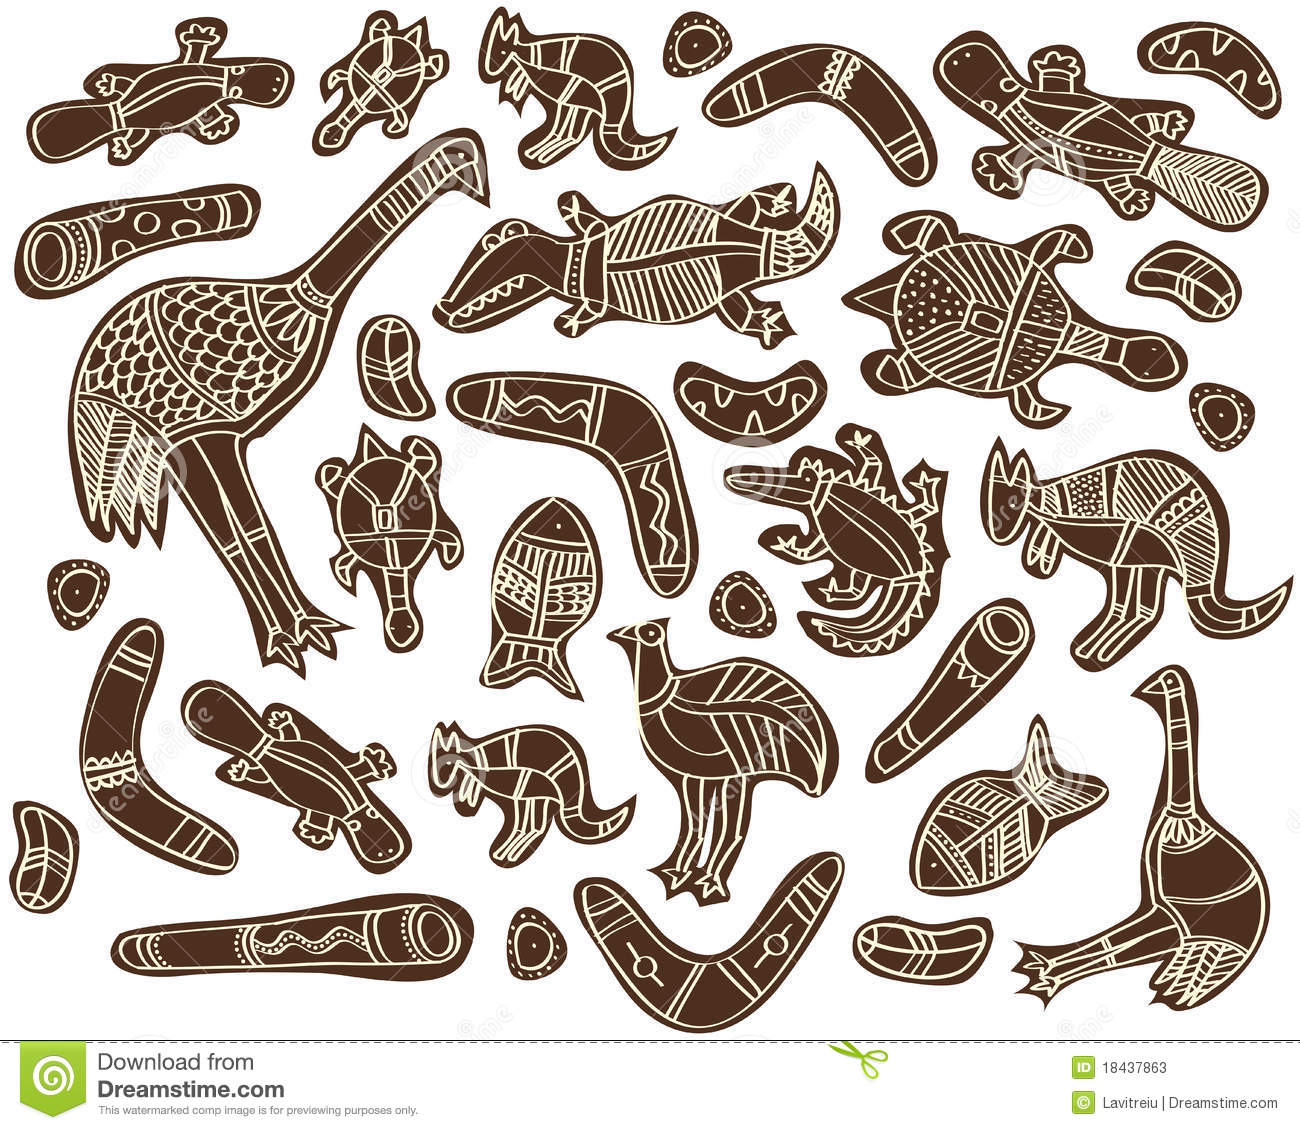 Australian Animals Drawings Aboriginal Pictures Of Animals Zoray Ayodhya Co